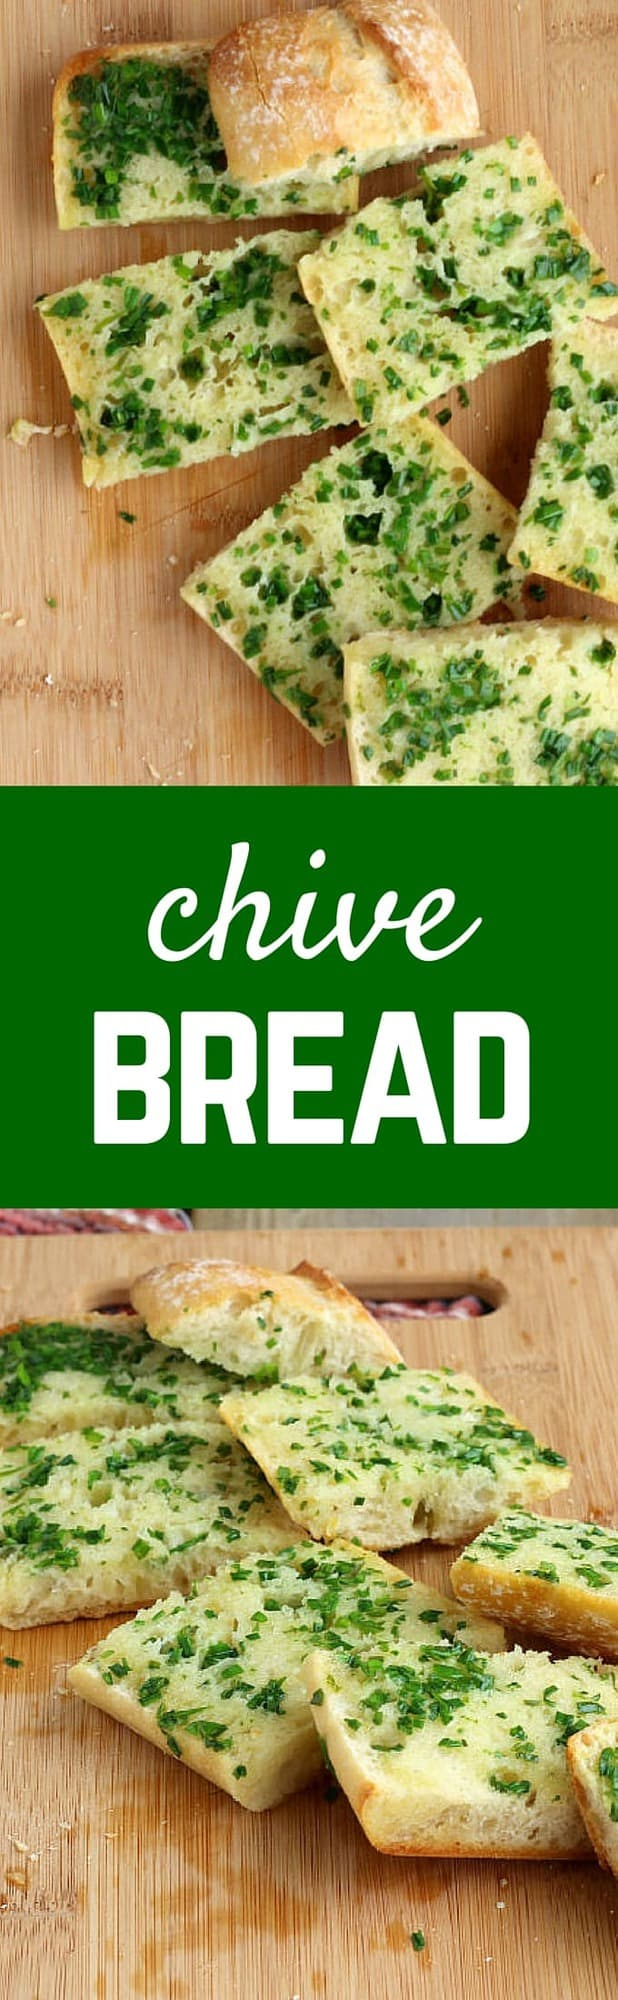 This chive bread is a great change from your typical garlic bread. Mix things up a little tonight! People will RAVE about this bread! Get the recipe on RachelCooks.com!